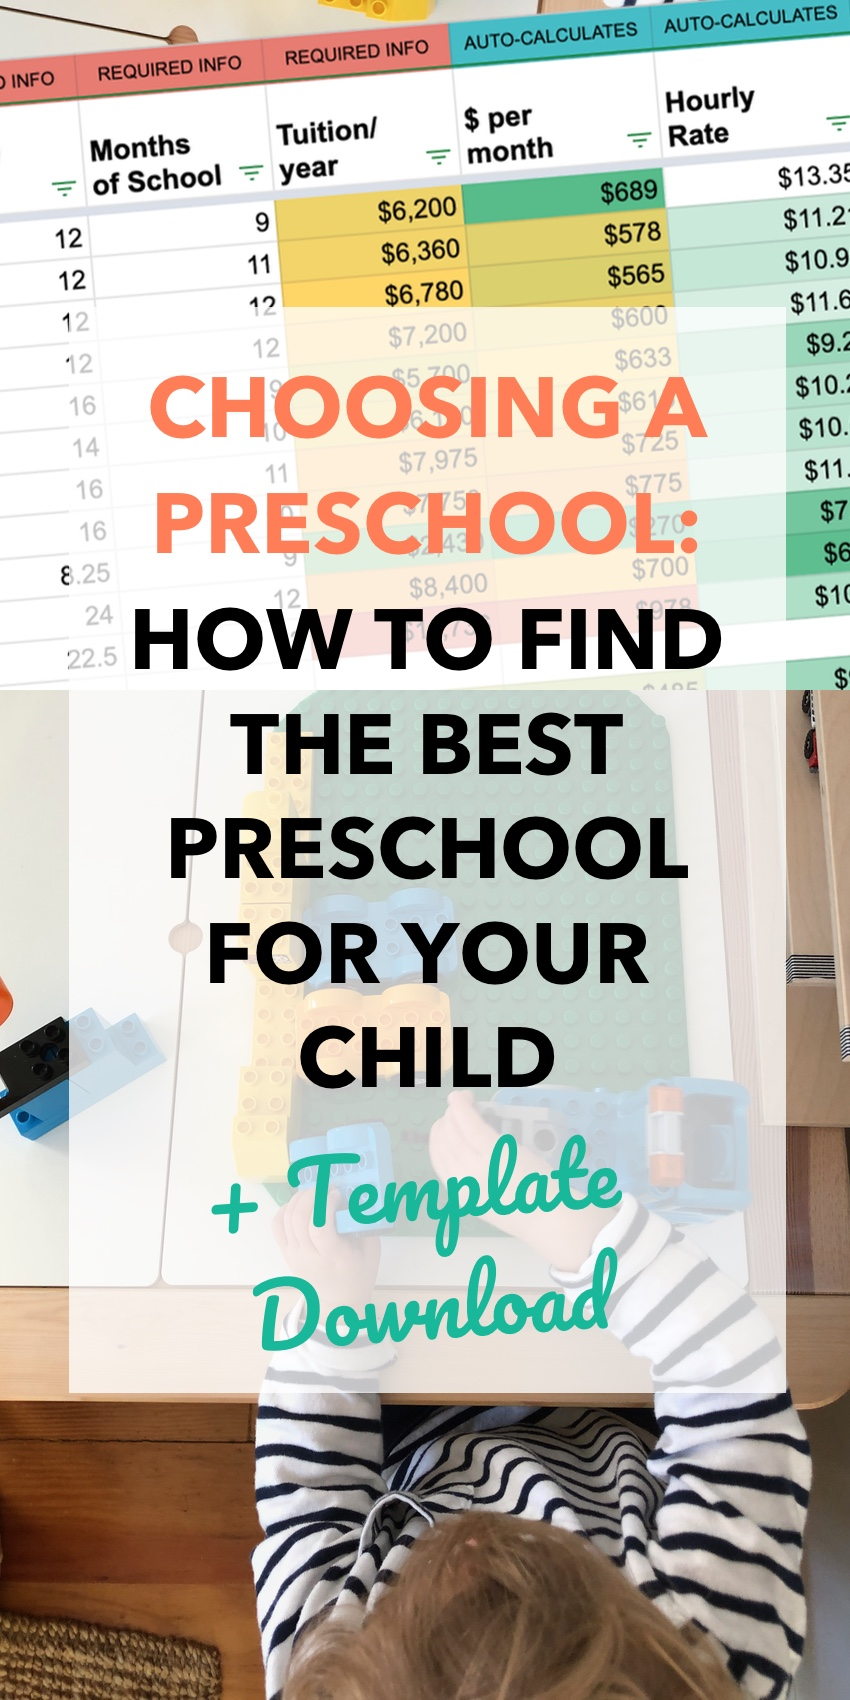 Choosing a Preschool: How to find the best preschool for your family + template download